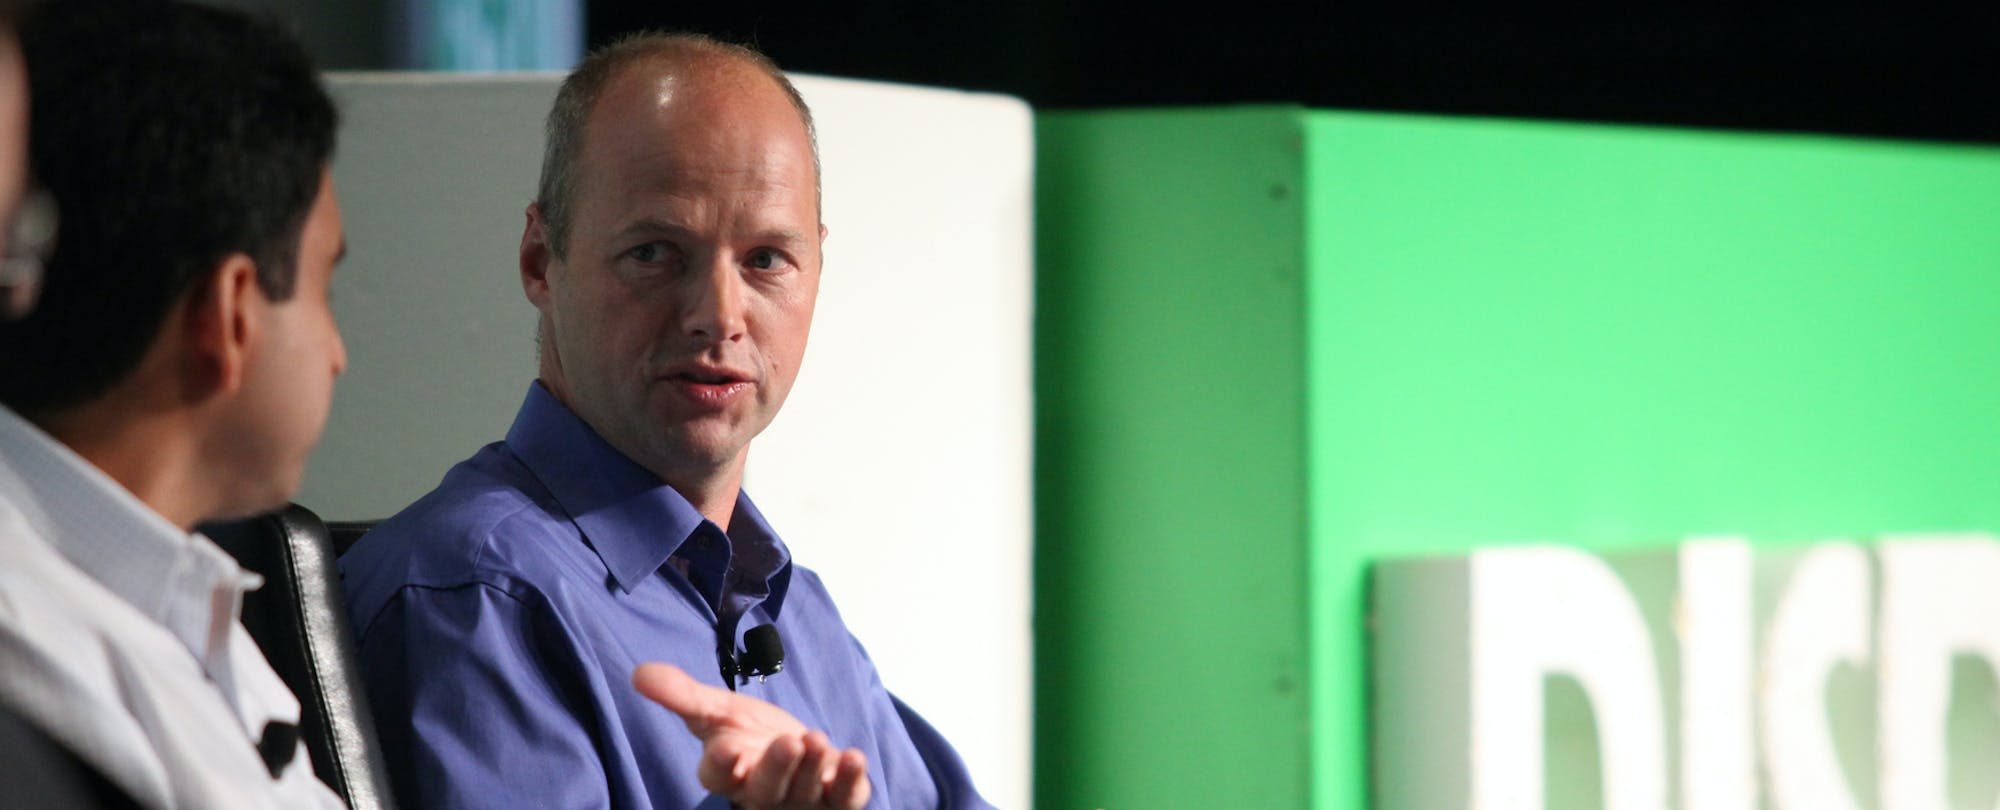 Udacity Raises Fresh $35M to Expand the 'University of Silicon Valley'